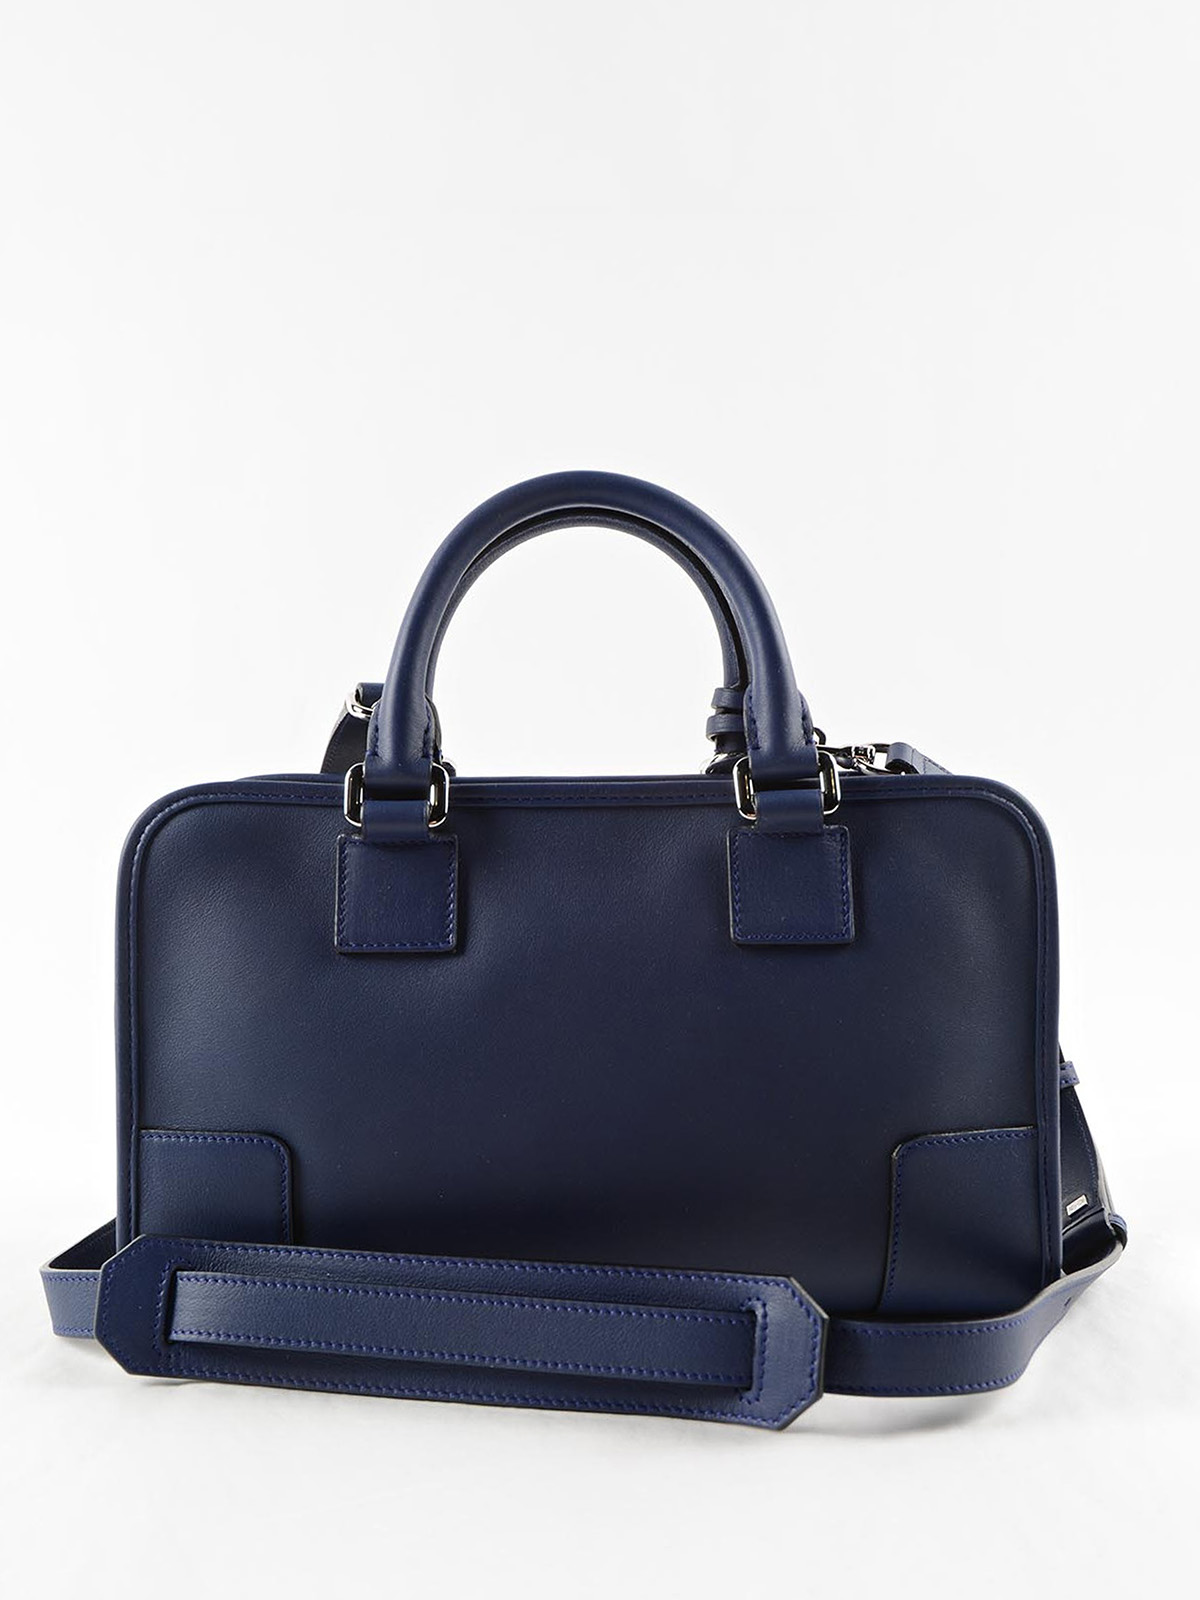 Loewe - Amazona 28 leather bag